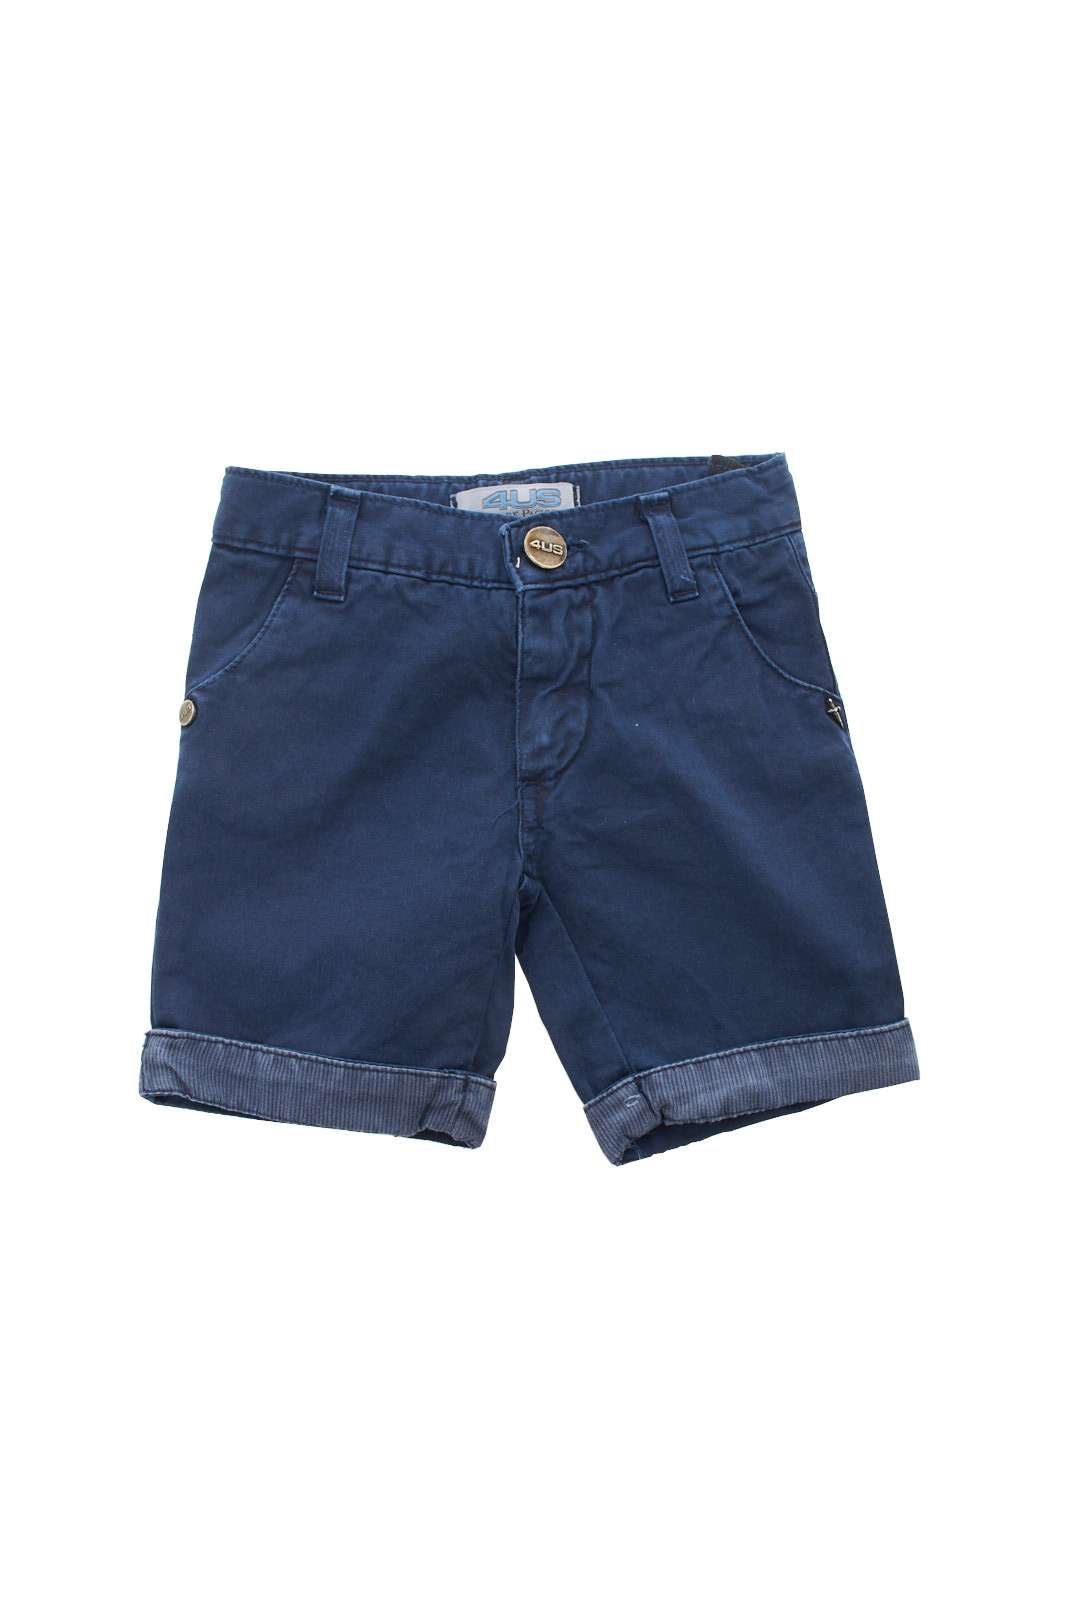 https://www.parmax.com/media/catalog/product/a/i/PE-outlet_parmax-pantaloni-bambino-Cesare-Paciotti-BMP508N-A.jpg